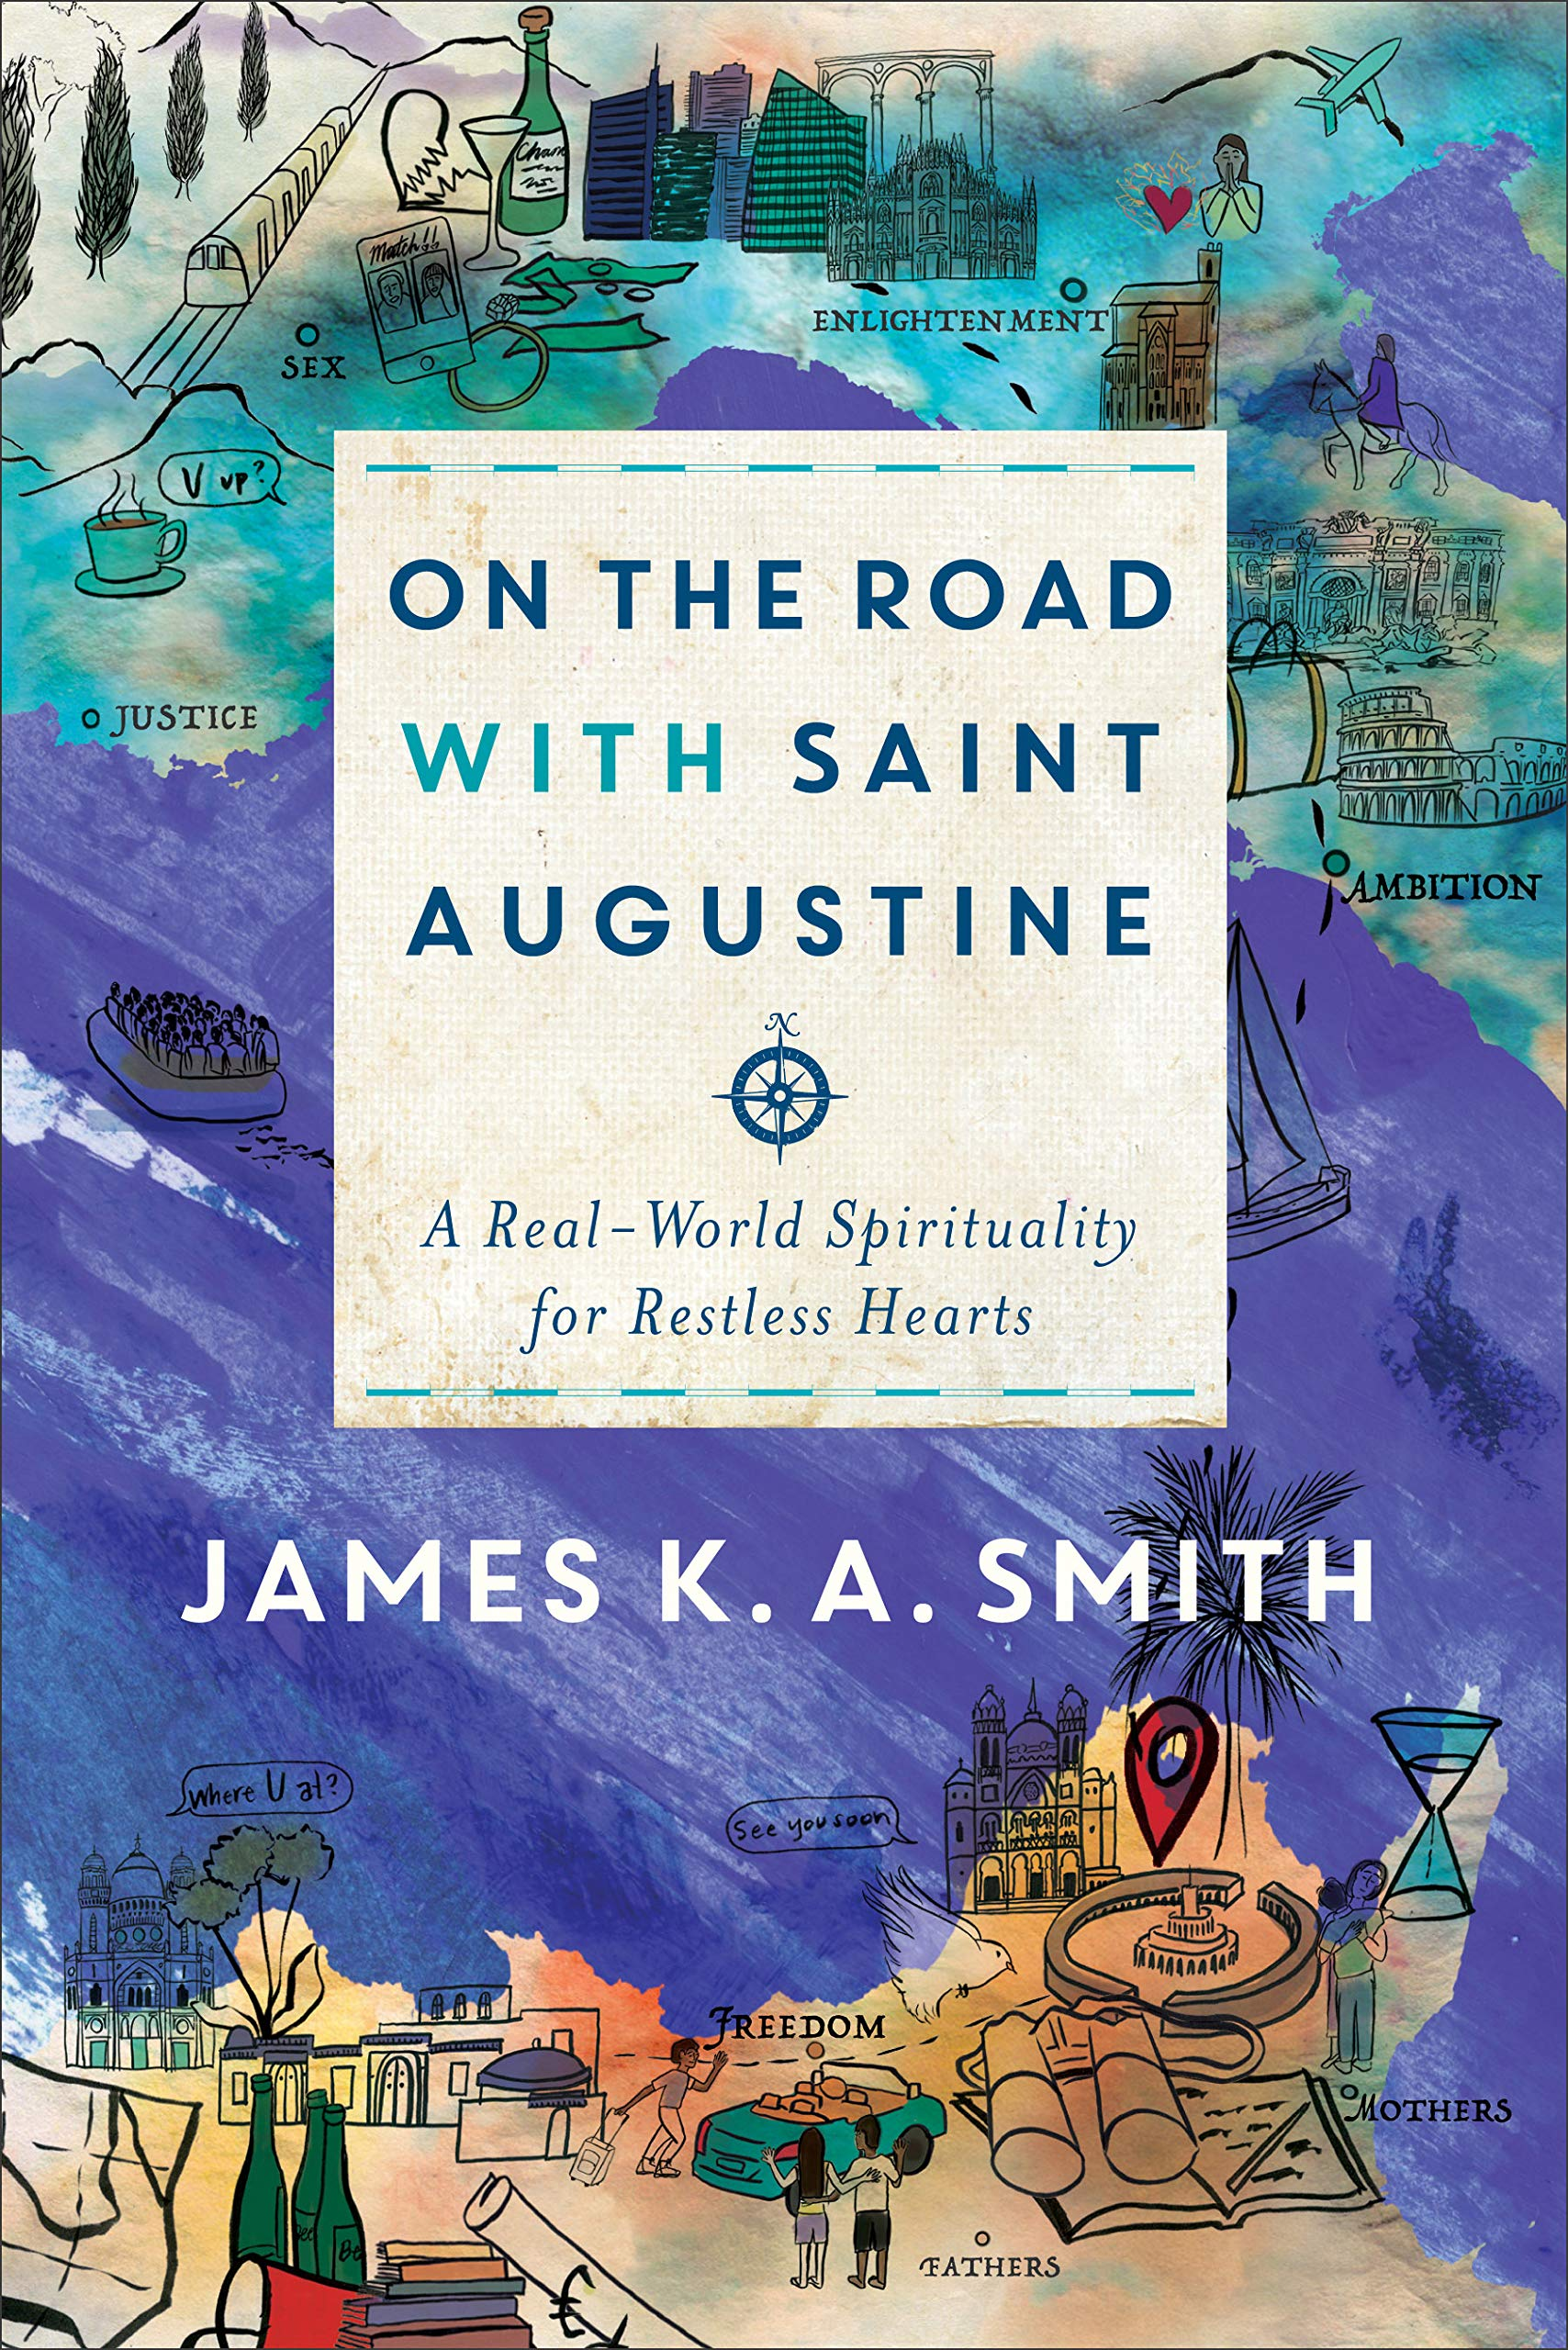 On the road with saint Augustine book cover by James K.A. Smith.